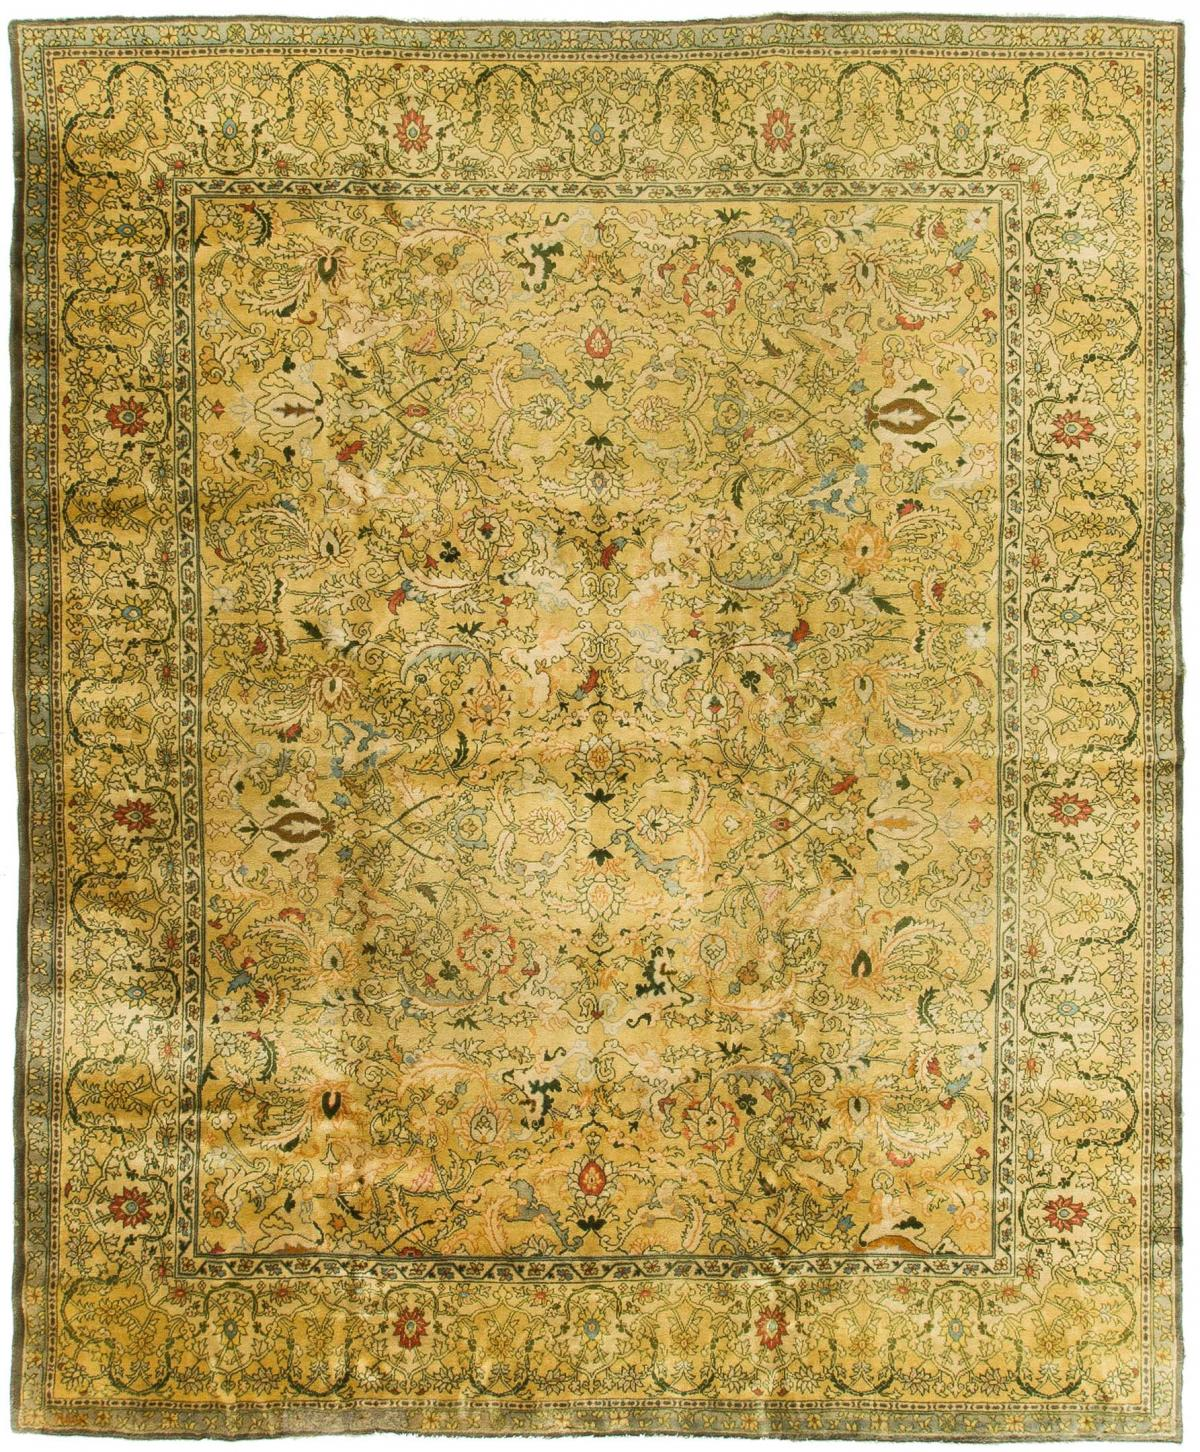 Rug Ant124579 Turkish Antique Area Rugs By Safavieh